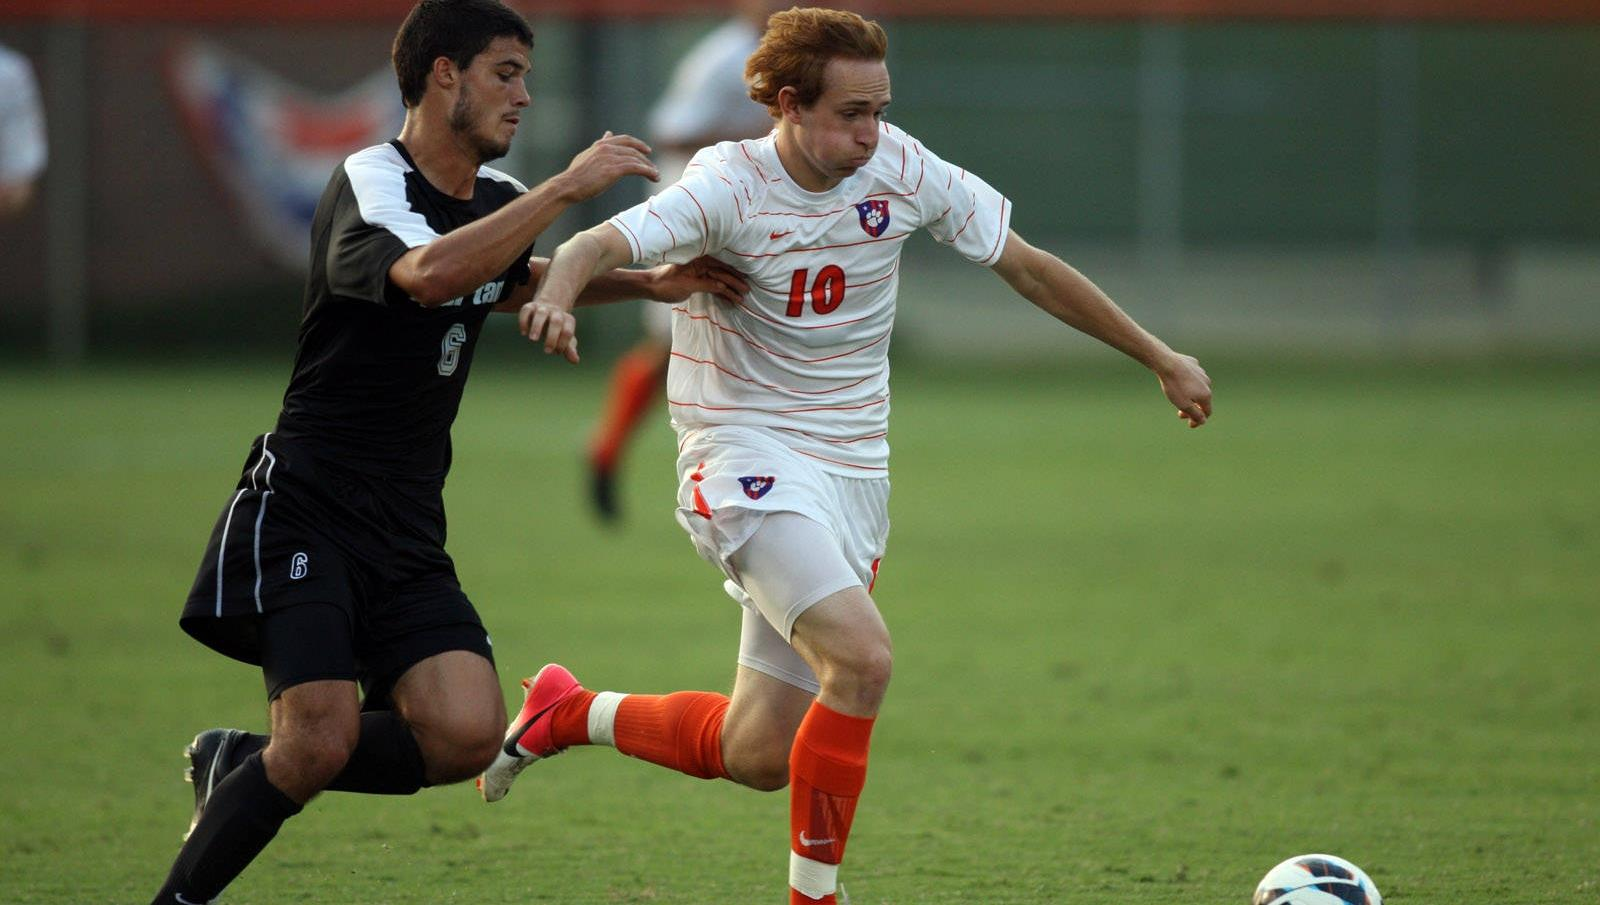 Clemson Defeats USC Upstate 1-0 in Season Opener